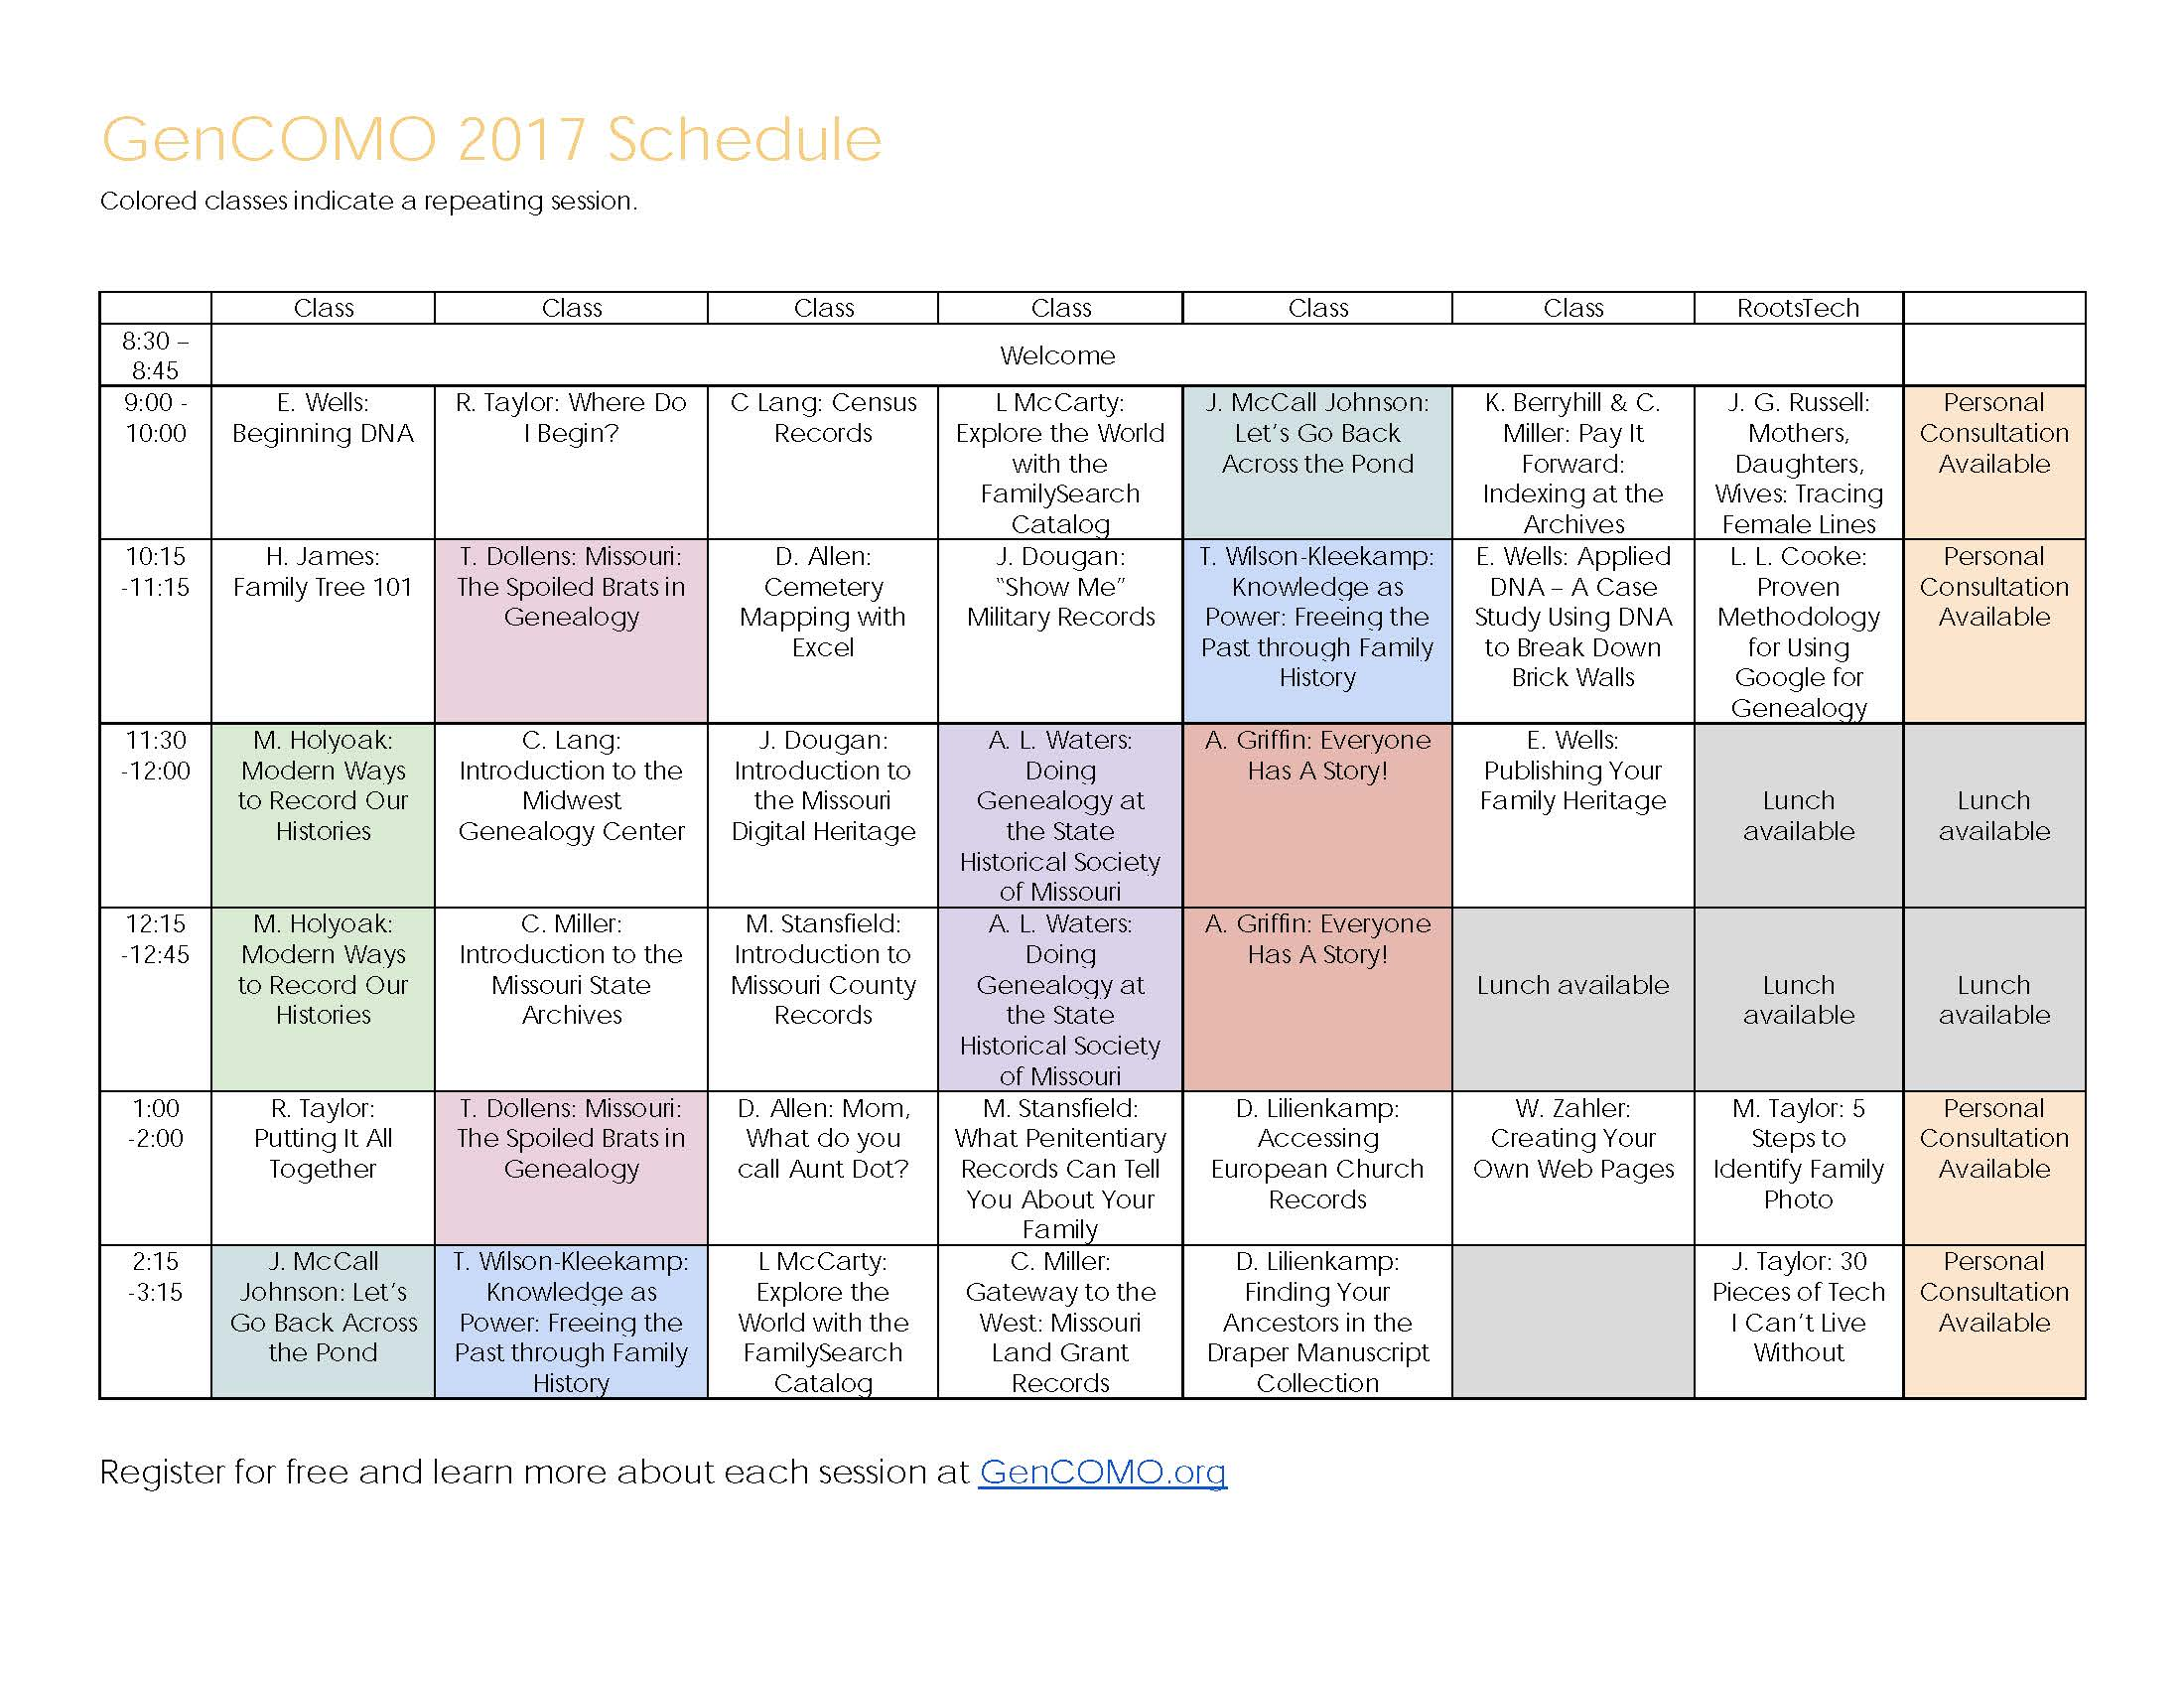 The redesigned conference schedule with improved readability and visual cues, available on the site as a printable PDF for those who prefer hardcopies